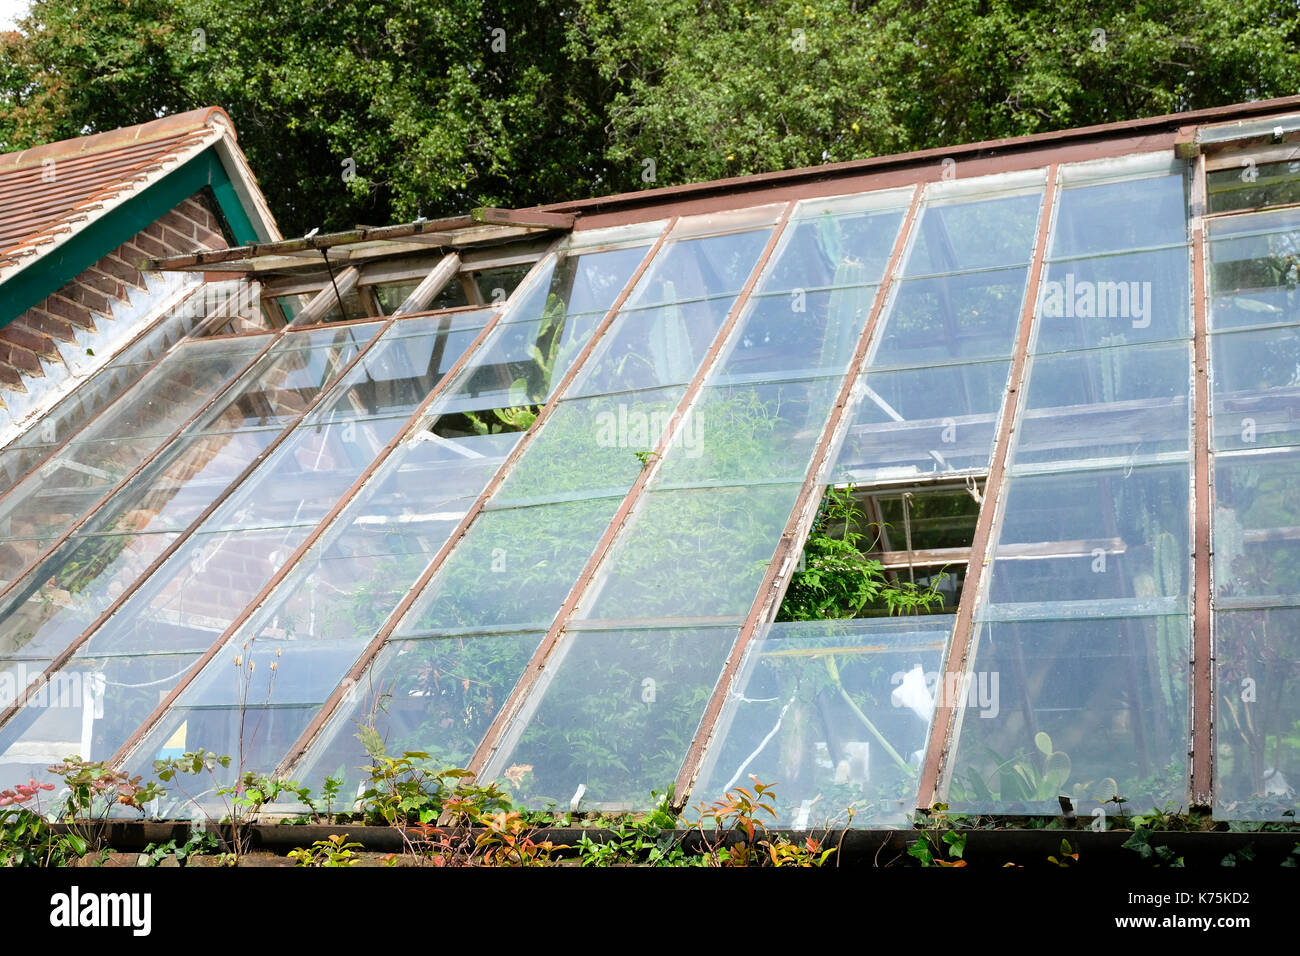 Large greenhouse with missing panes of glass in the roof - Stock Image